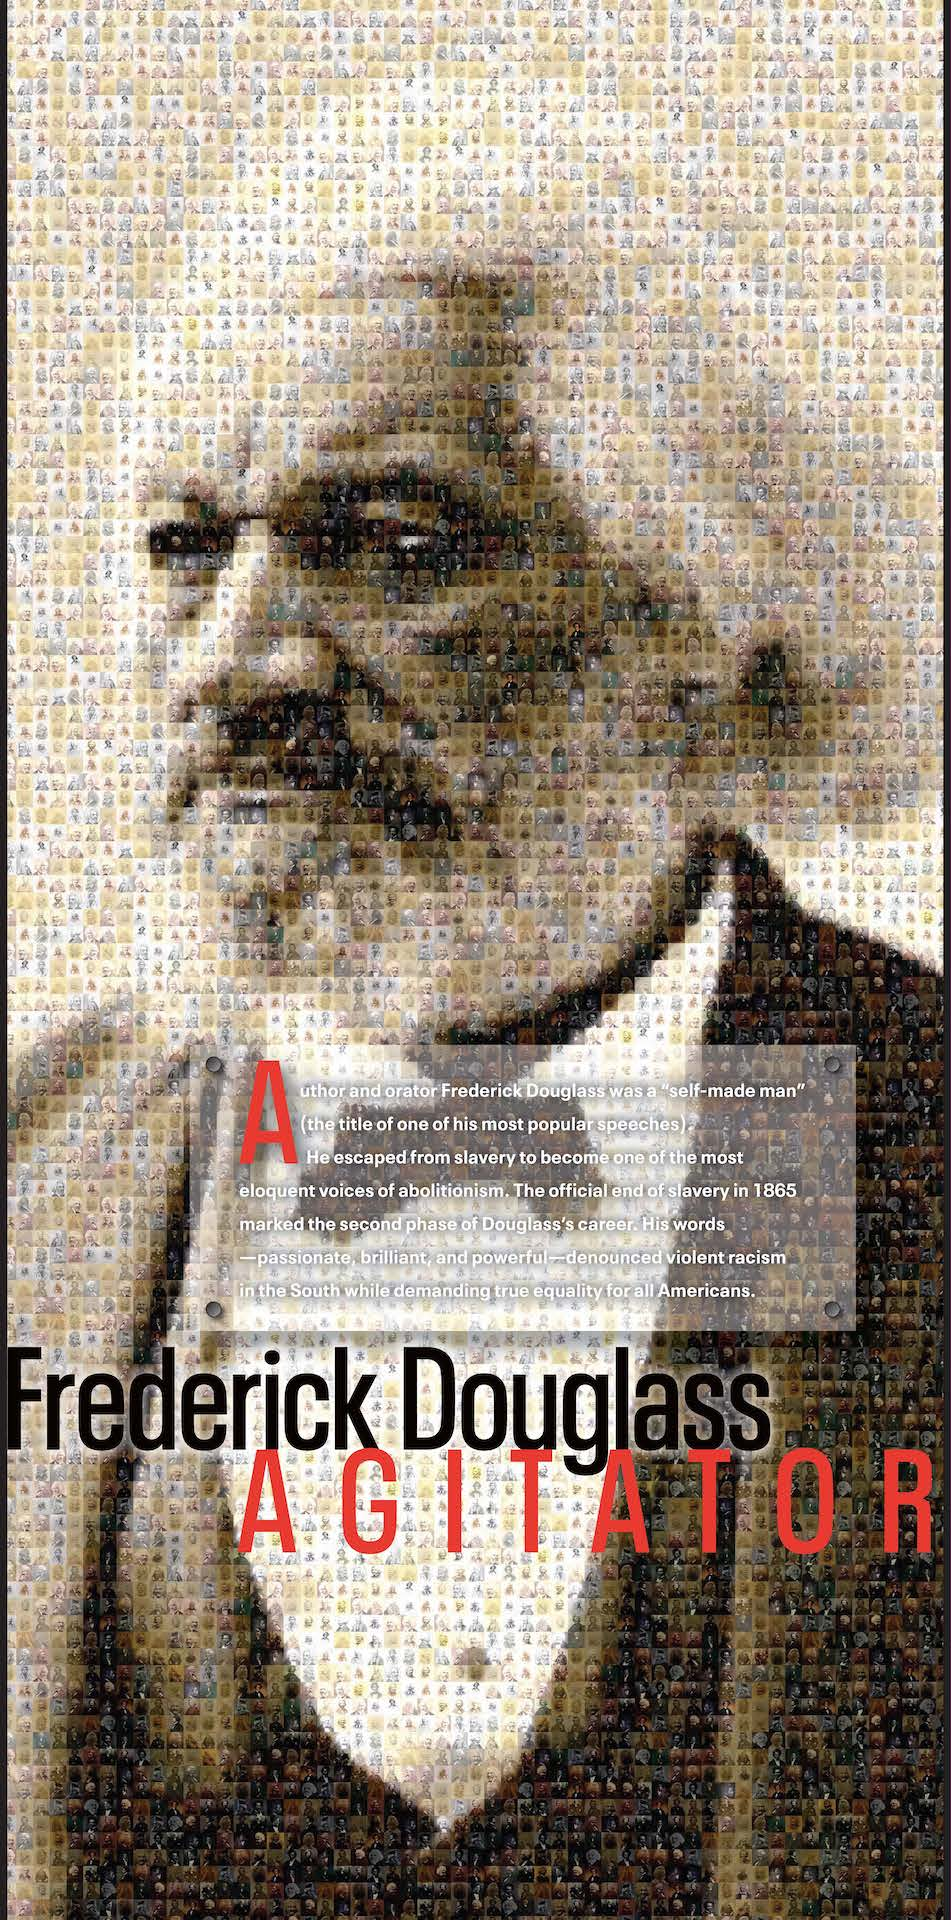 Morris_Frederick_Douglass_Intro_Layout.jpg